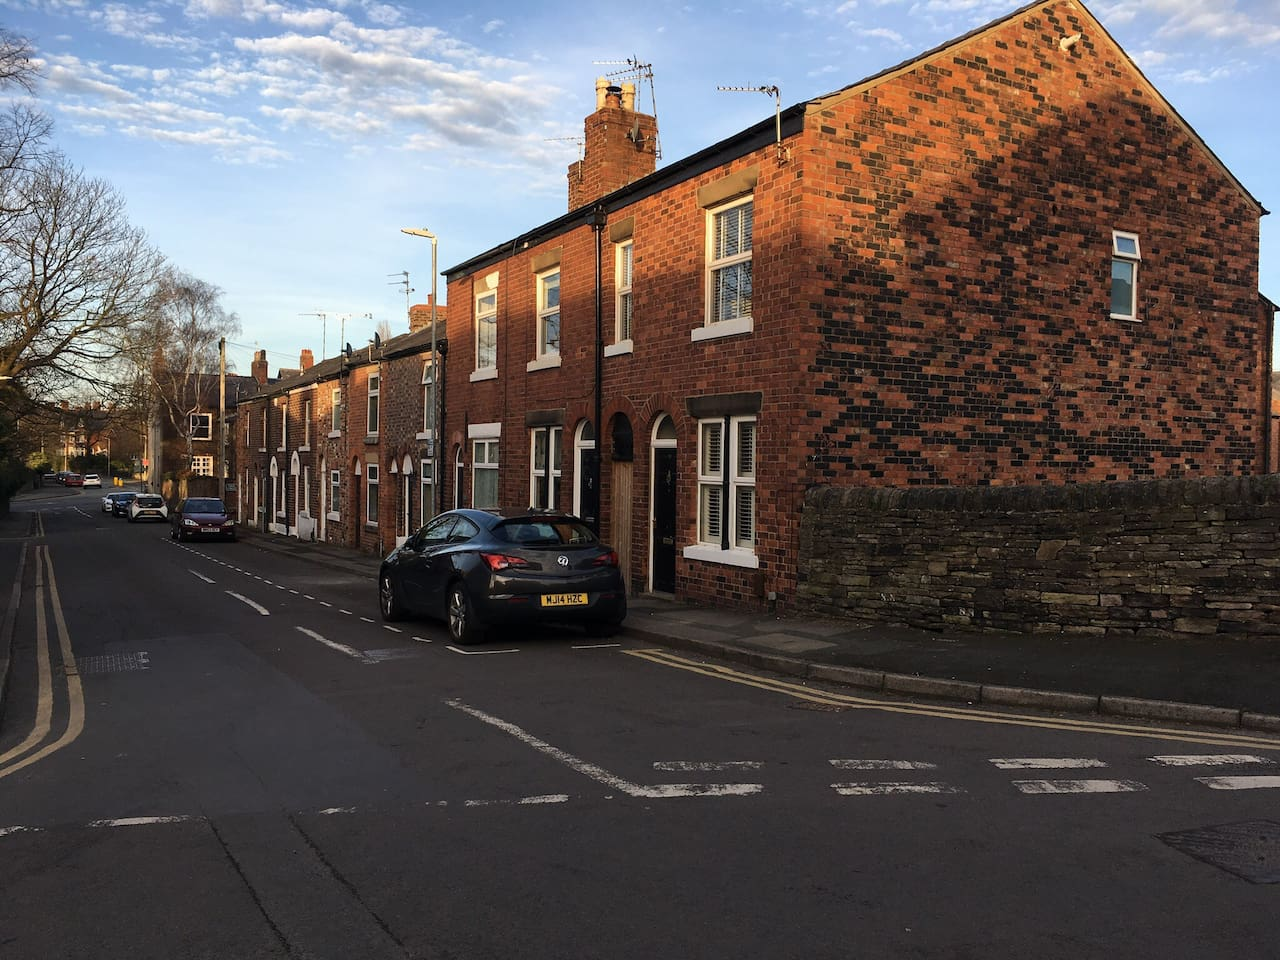 The house (end terrace nearest to camera) is on a quiet, pleasant street